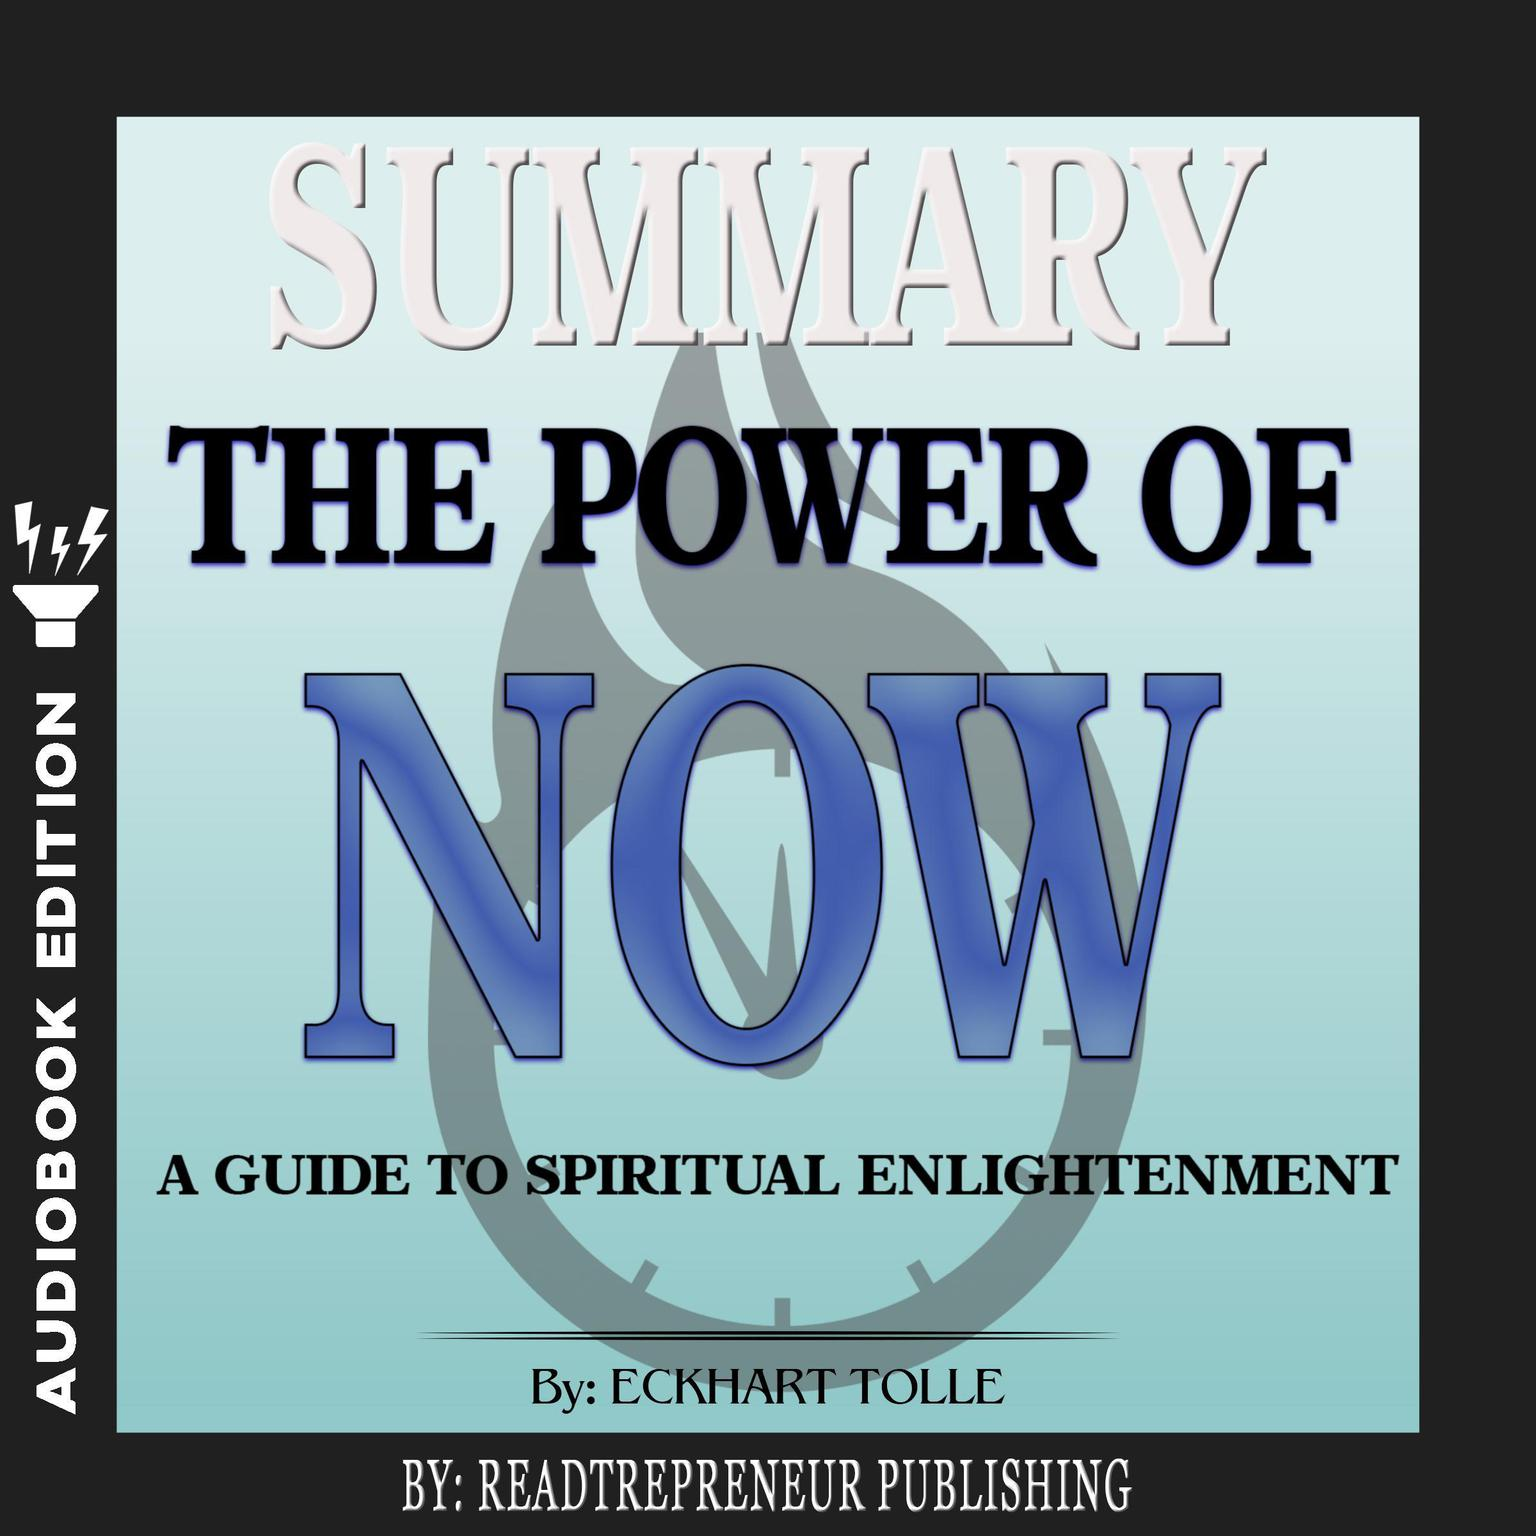 Printable Summary of The Power of Now: A Guide to Spiritual Enlightenment by Eckhart Tolle Audiobook Cover Art